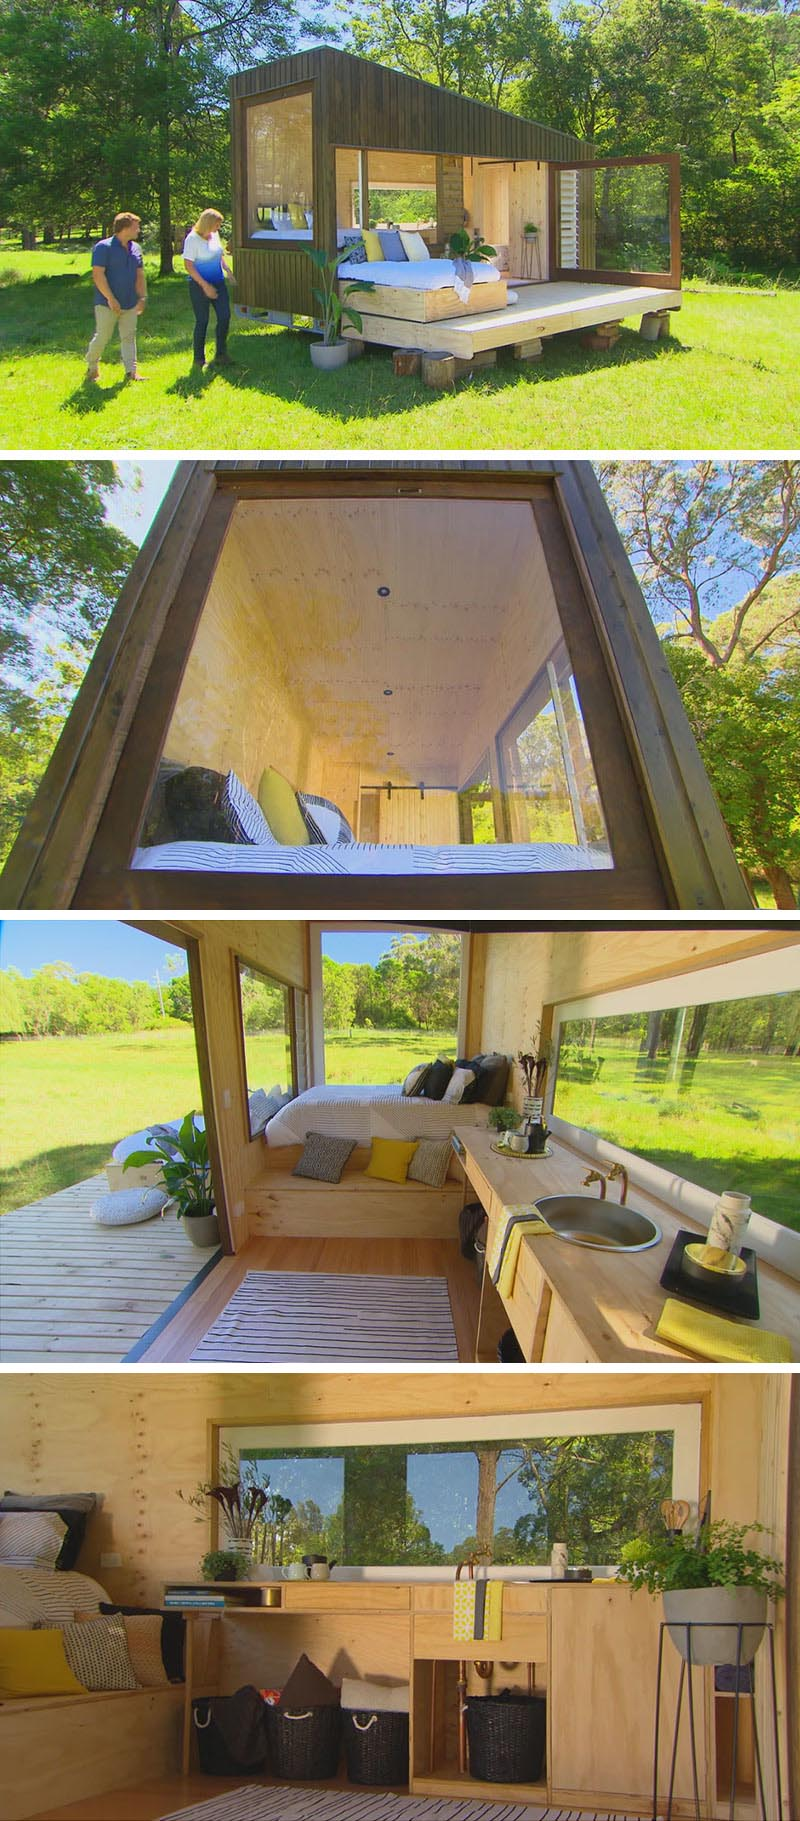 This tiny house in Australia designed by architect Paul Sofronov of Archemy, measures in at just 19 feet x 7 feet, and has a simple modern design that's covered in cypress pine cladding. There's also a deck that has a daybed that slides out from within the tiny house.